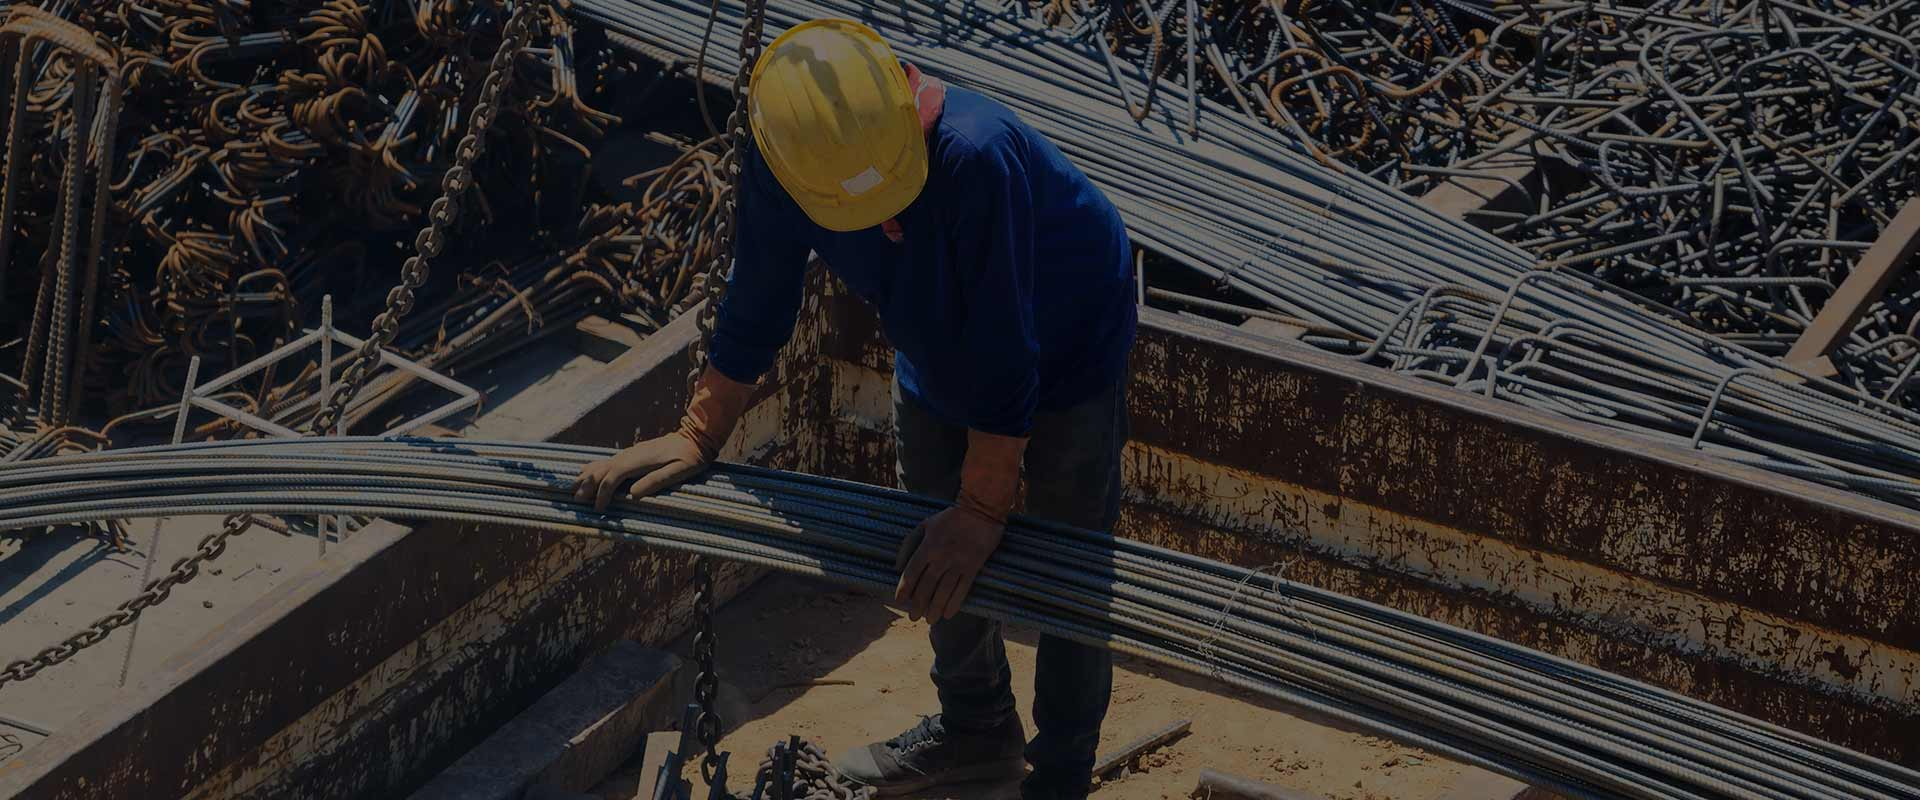 We Specialize in Commercial Construction